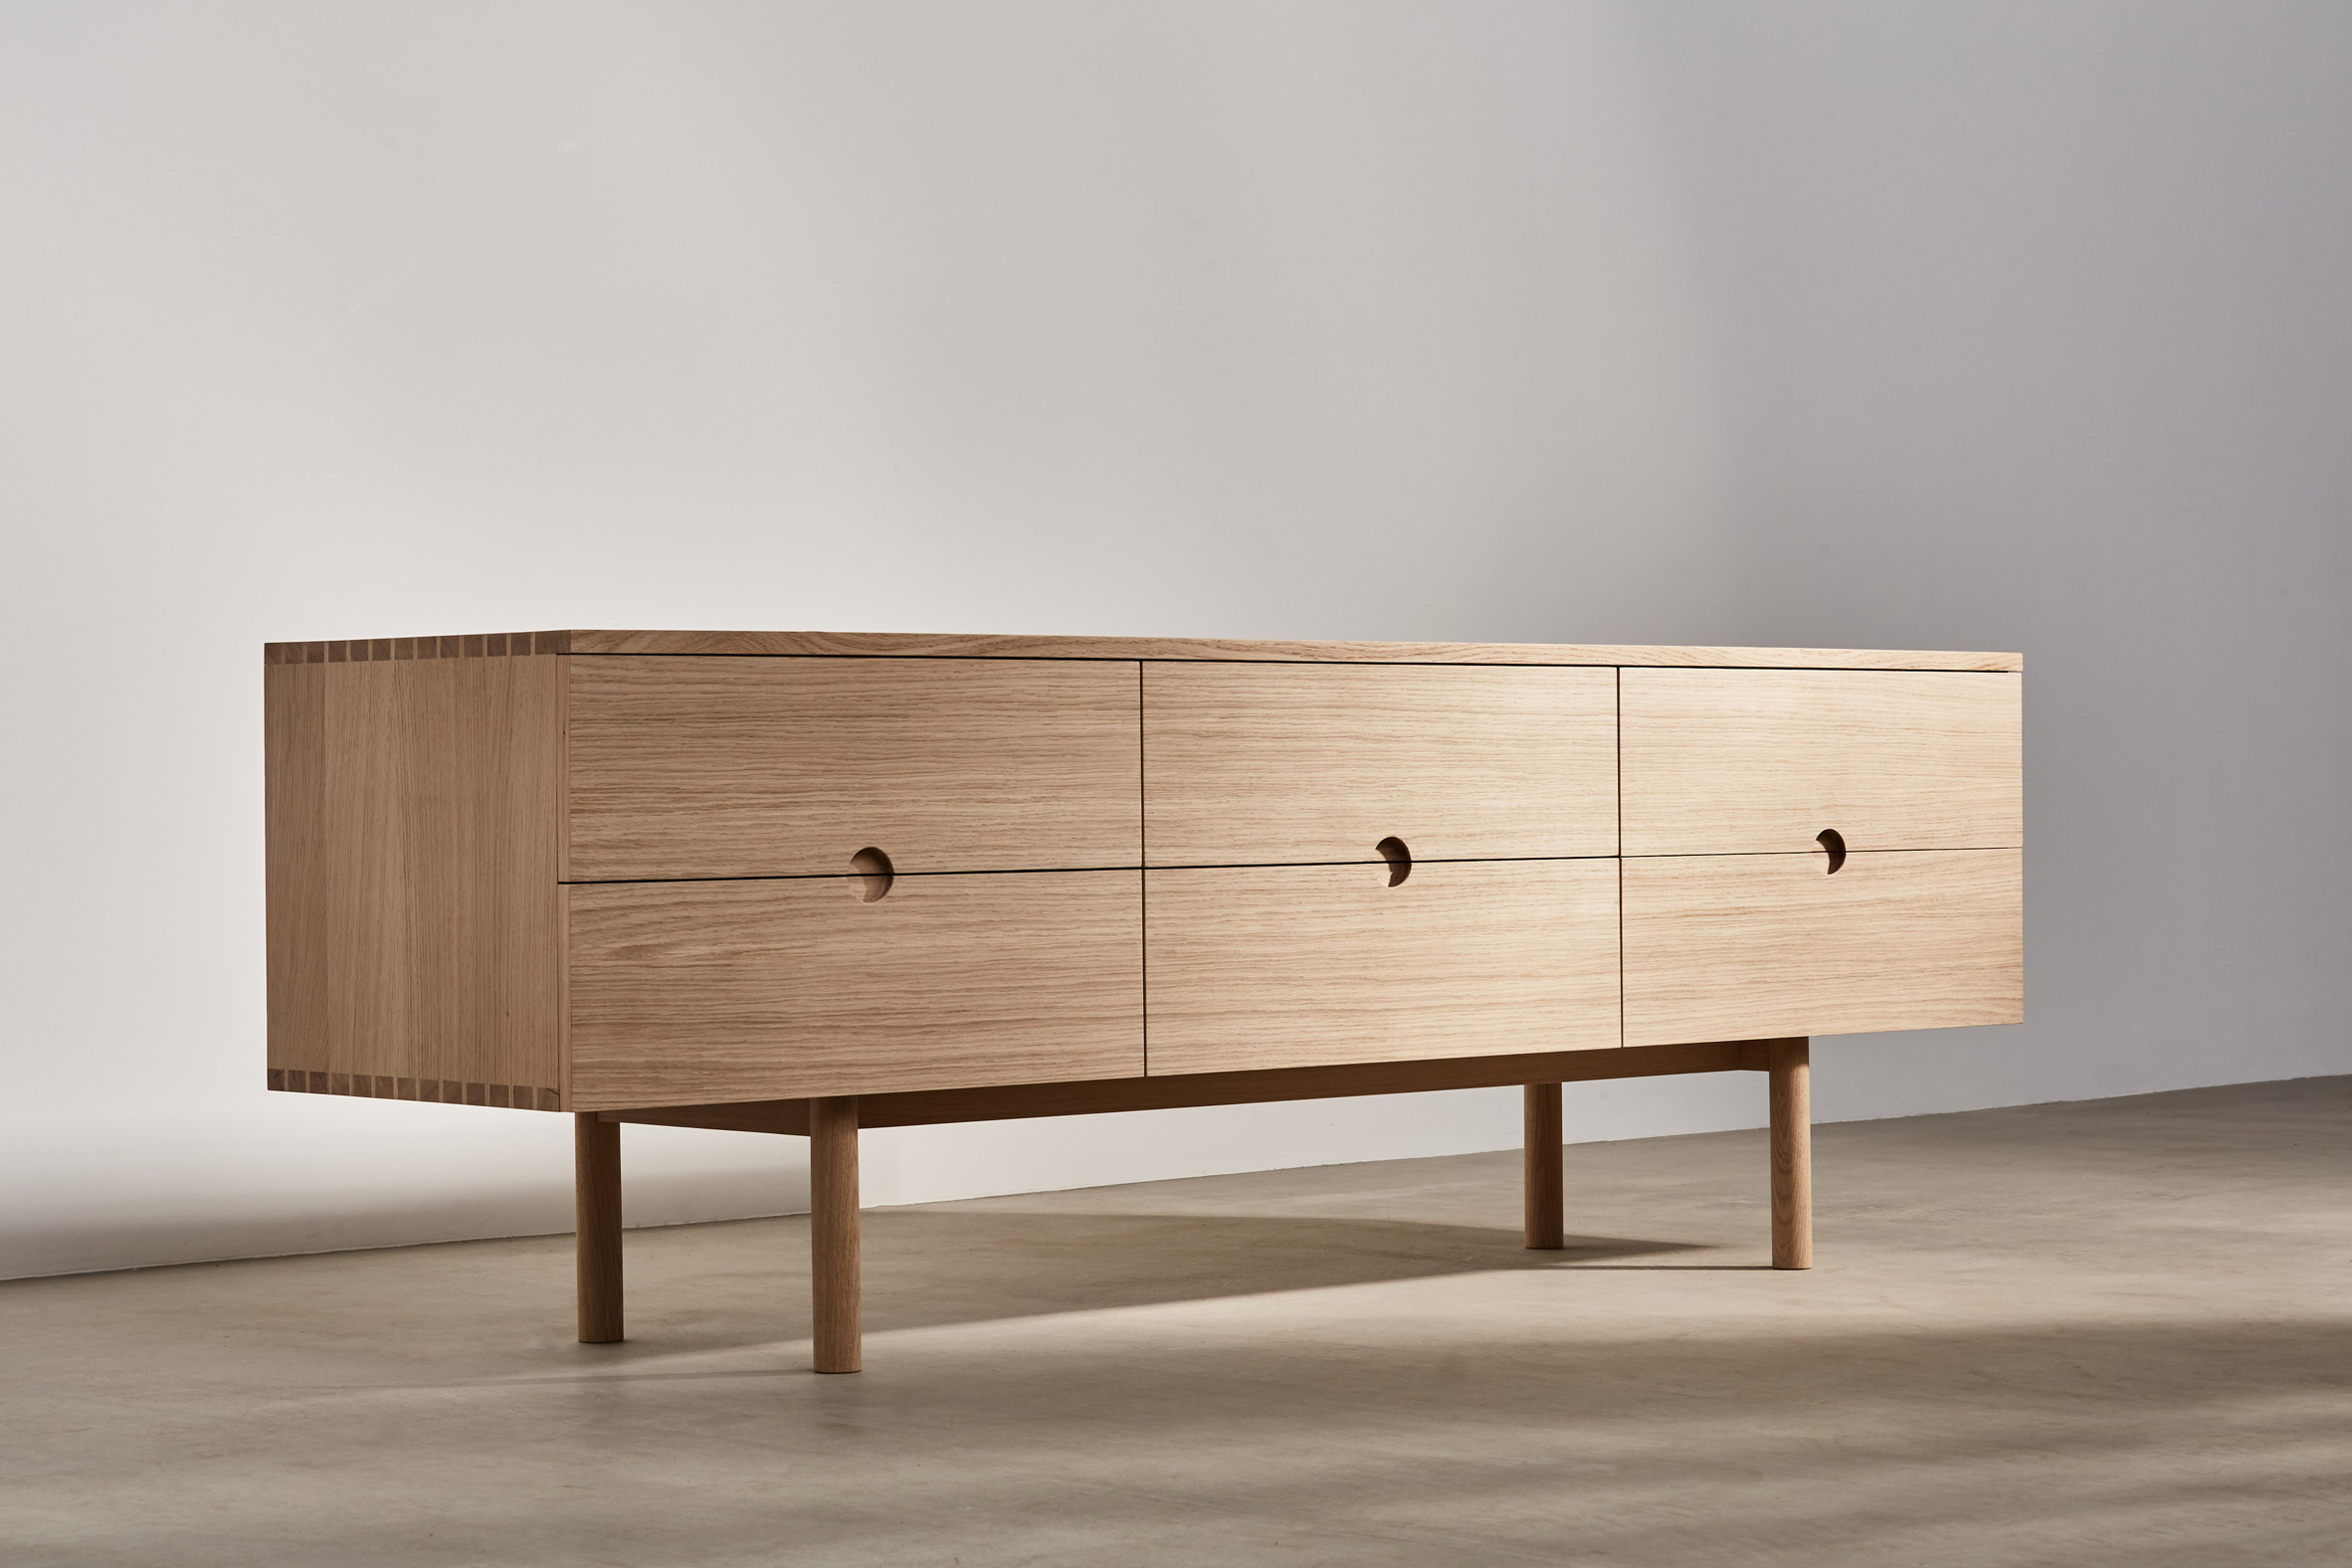 FosterPartners launches range of solid wood furniture